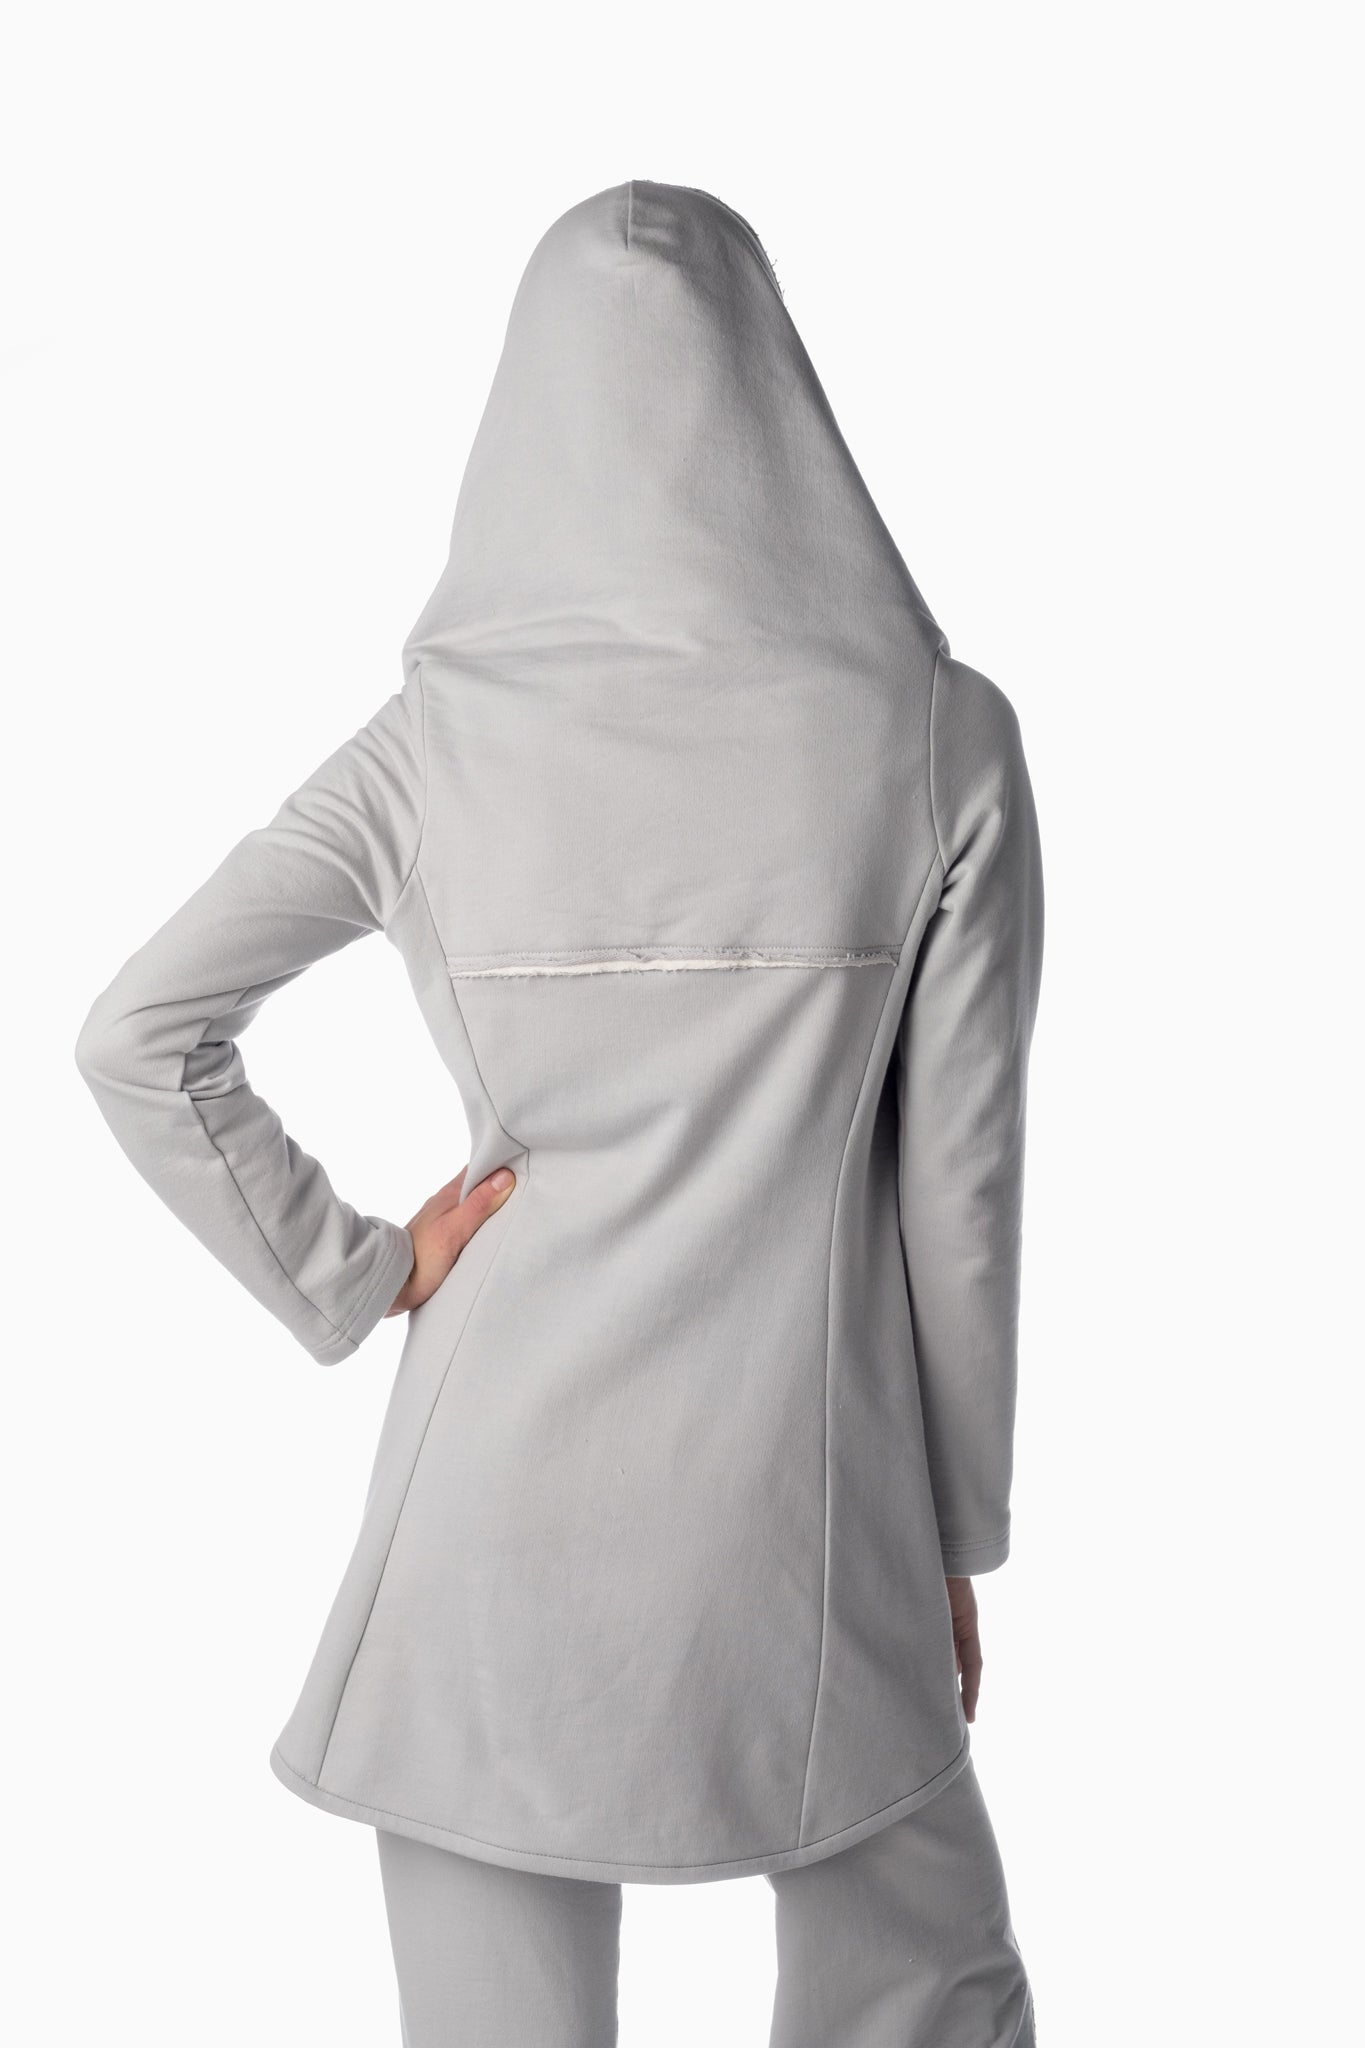 Shesha Hood™ <br>Arctic Grey | Winter White Lining